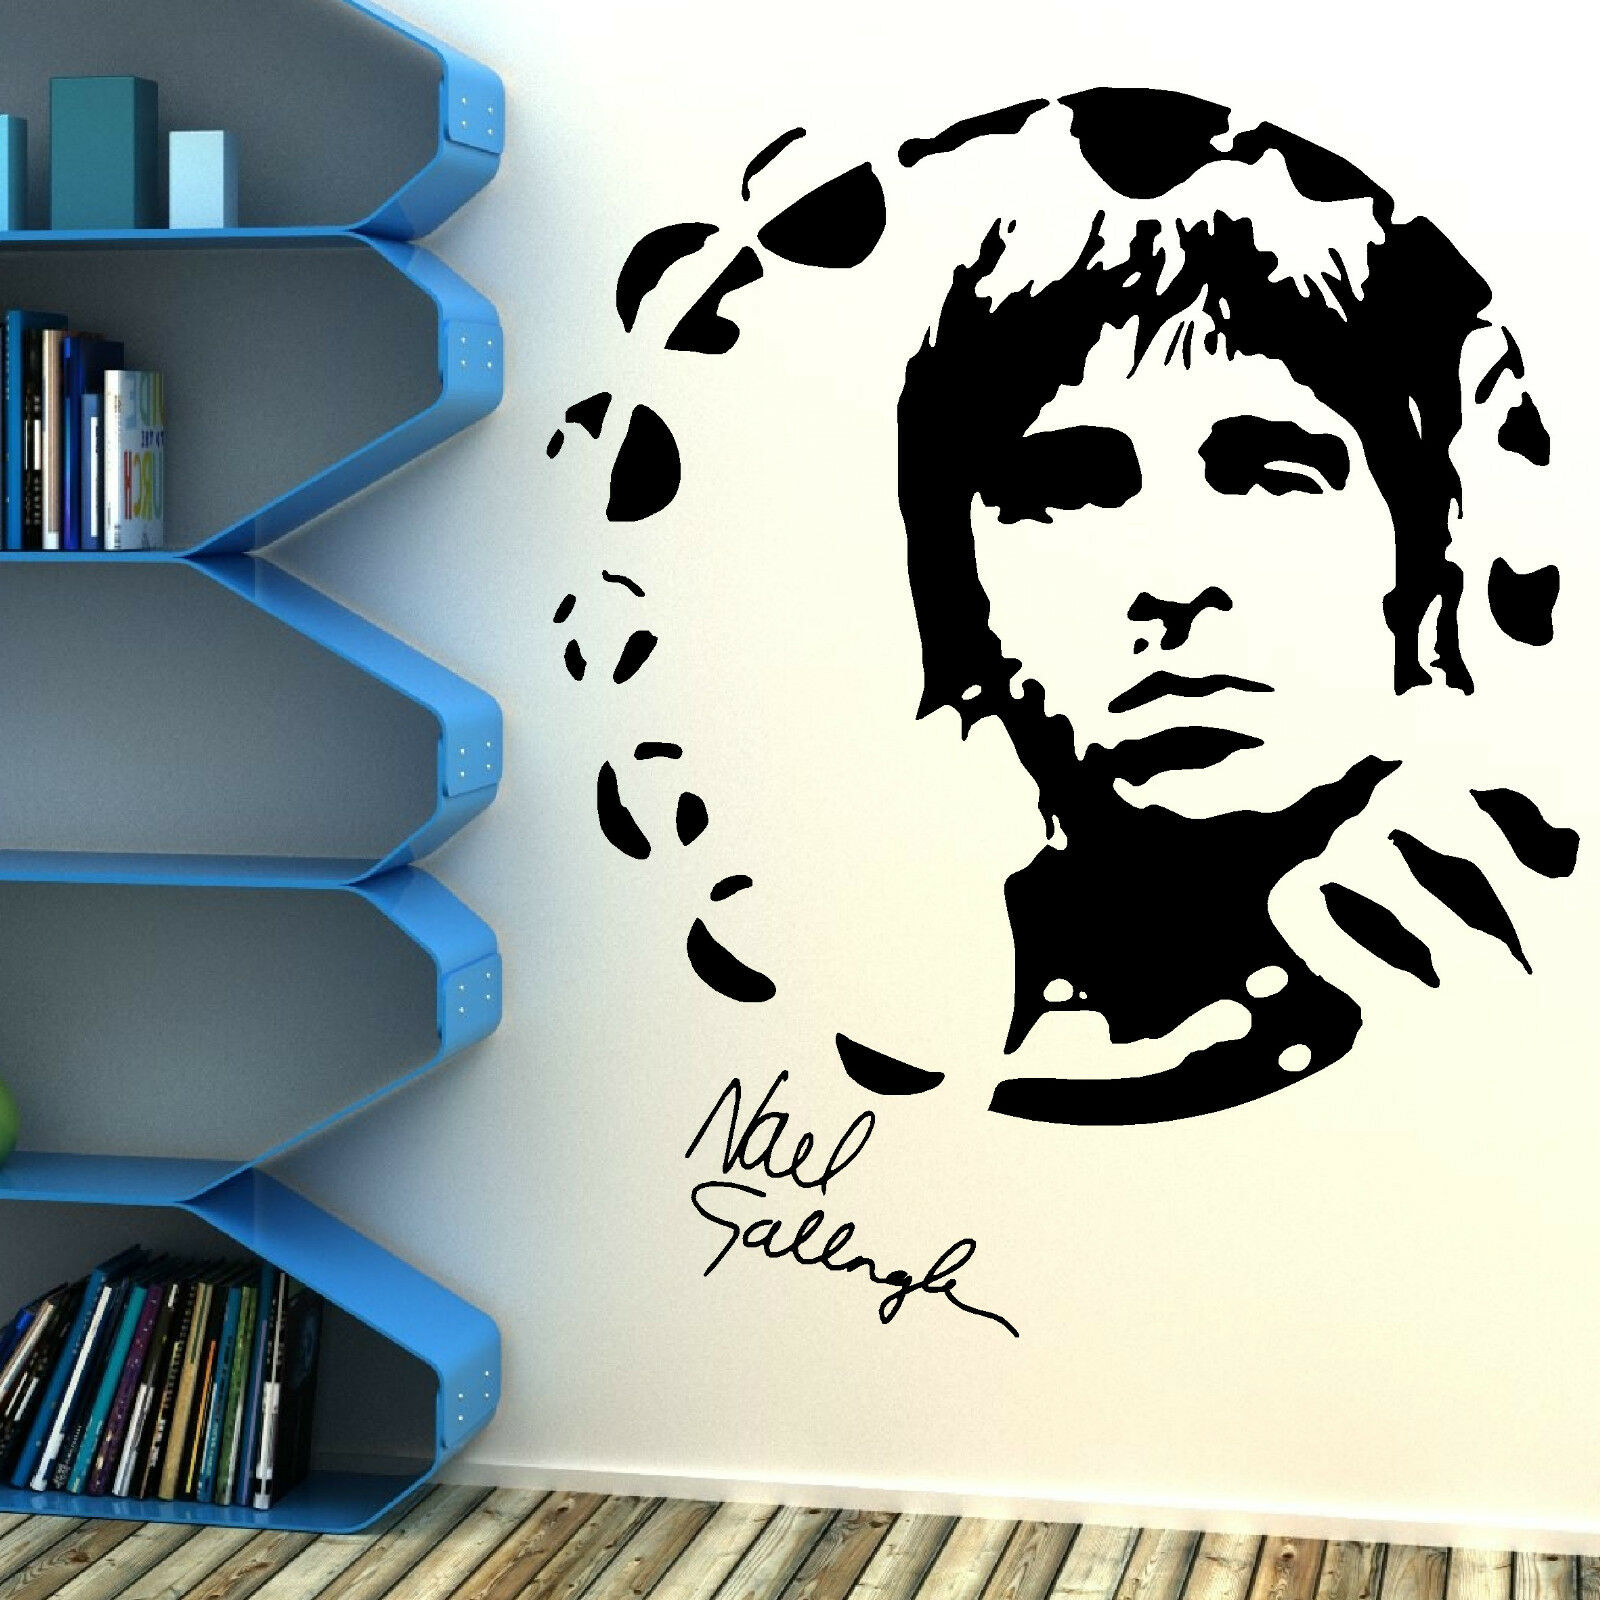 noel gallagher oasis portrait vinyl wall art sticker mural decal music themed ebay. Black Bedroom Furniture Sets. Home Design Ideas